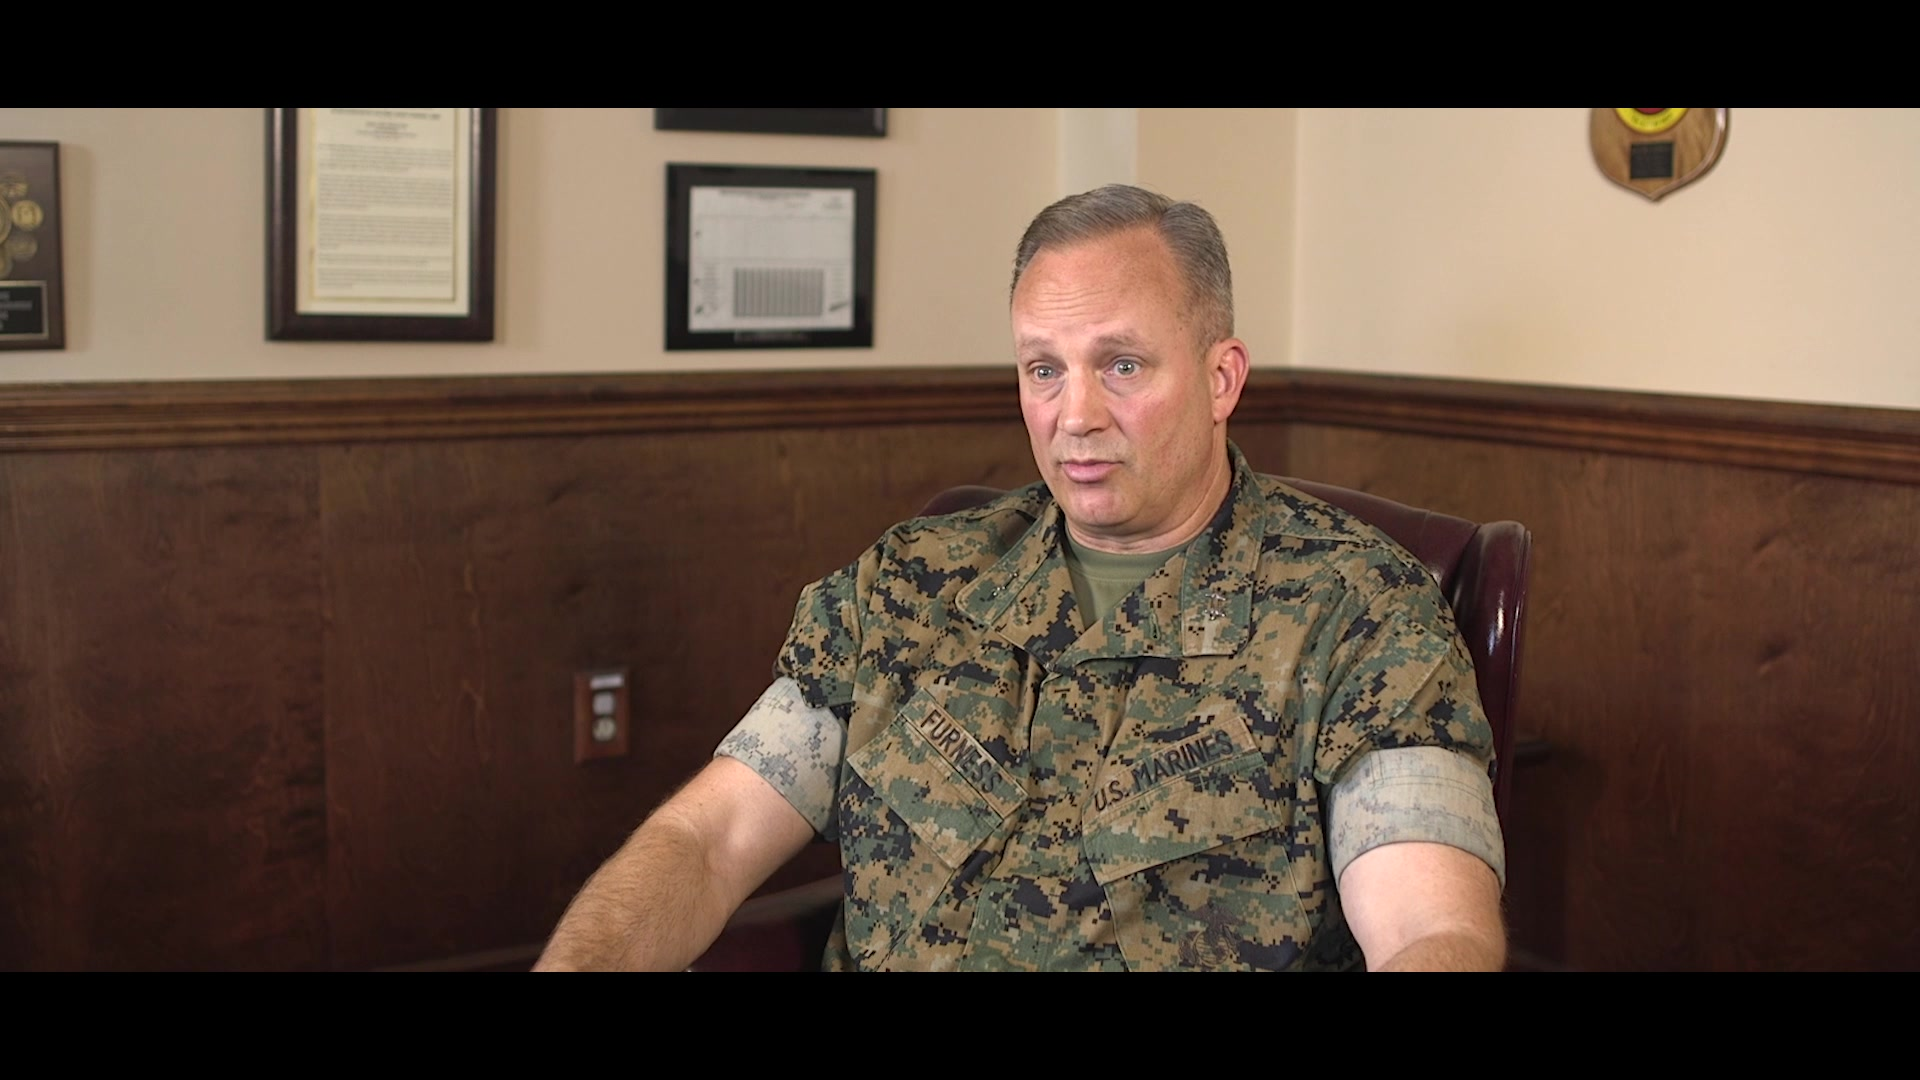 U.S. Marine Corps Maj. Gen. David J. Furness, the Commanding General (CG) of 2d Marine Division (MARDIV), reflects on his creation of the 2d MARDIV Competition Order as part of the series Reflections on Command at Camp Lejeune, North Carolina, May 28, 2020. Reflections on Command is a nine-week video series highlighting Furness' time as the 2d MARDIV CG leading up to his Change of Command in August 2020.  (U.S. Marine Corps video by Lance Cpl. Andrew Smith)